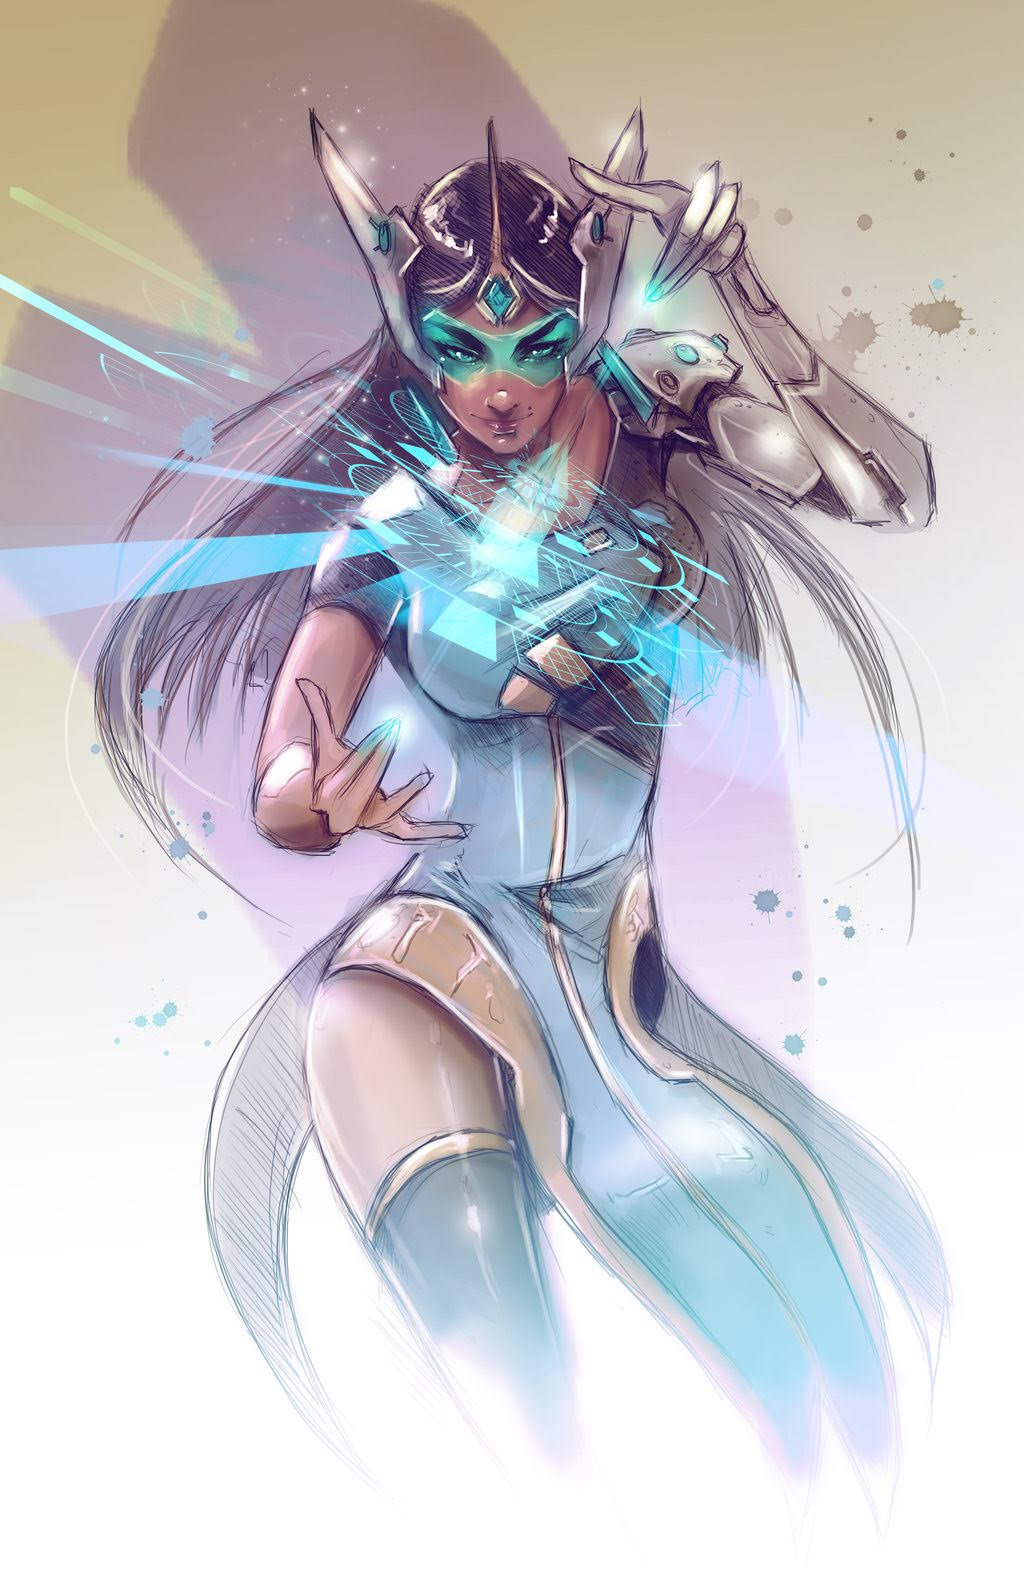 images of symmetra